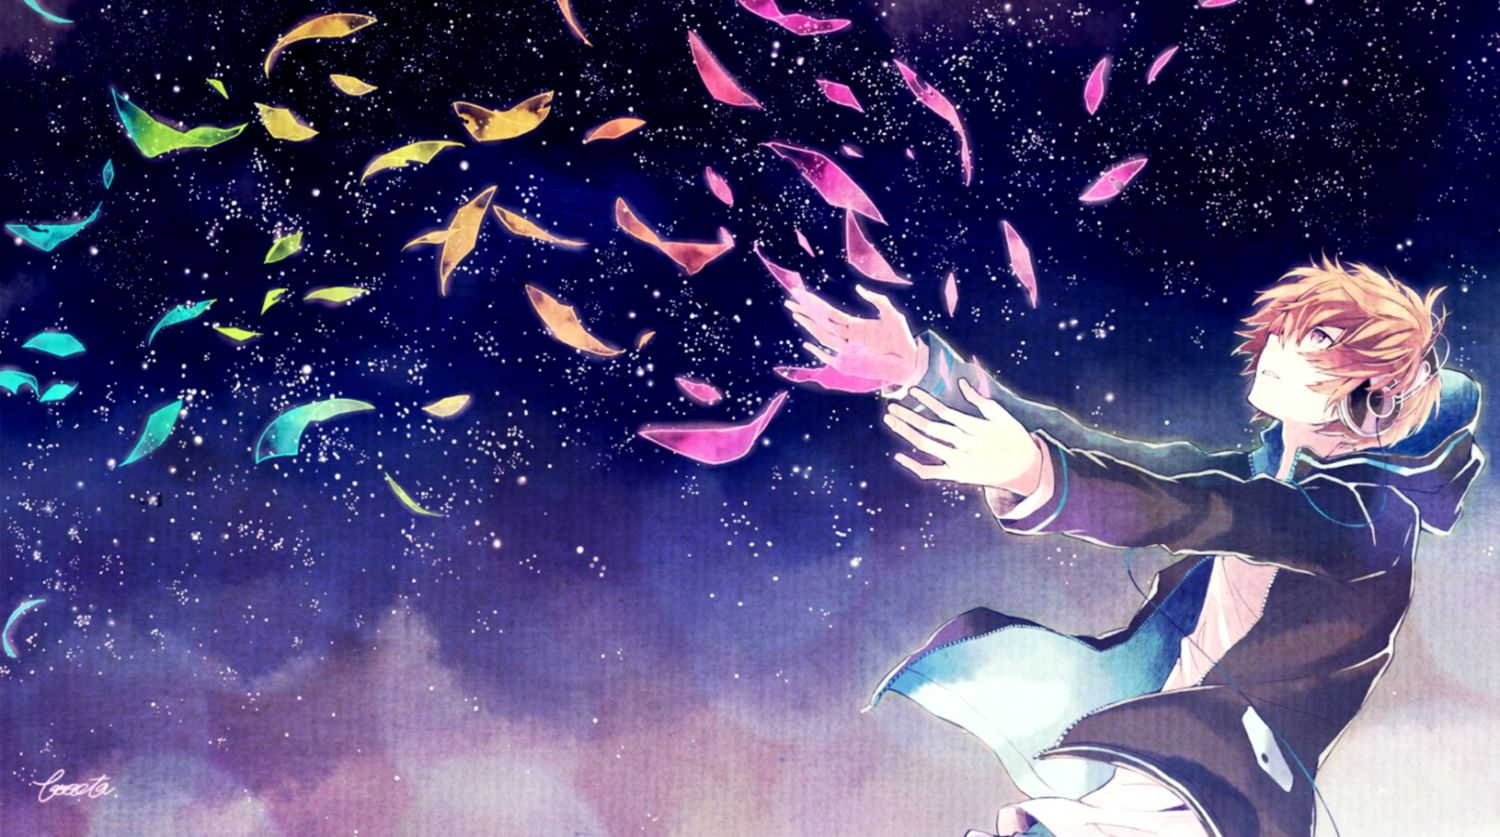 Wallpaper Anime Boy Posted By Zoey Anderson